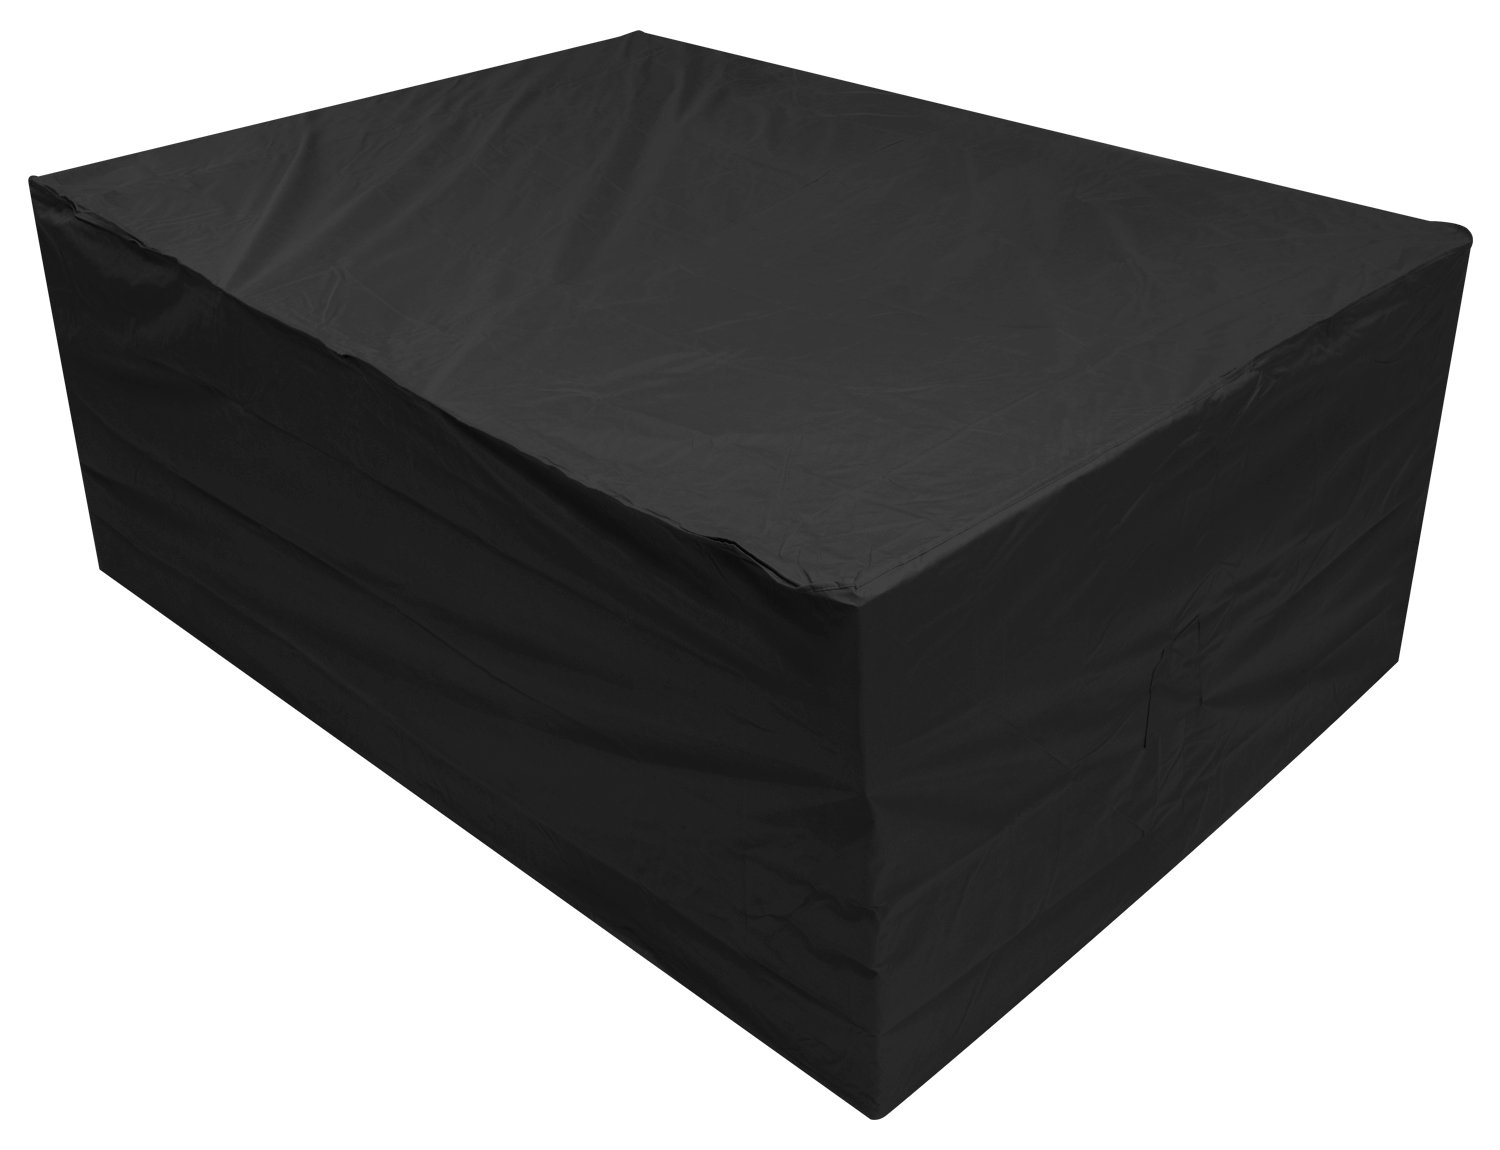 Oxbridge Black Large Patio Set//Oval//Rectangle Table Cover Garden Outdoor Furniture Cover 2.8m x 2.06m x 1.08m//9.2ft x 6.75ft x 3.5ft 5 YEAR GUARANTEE